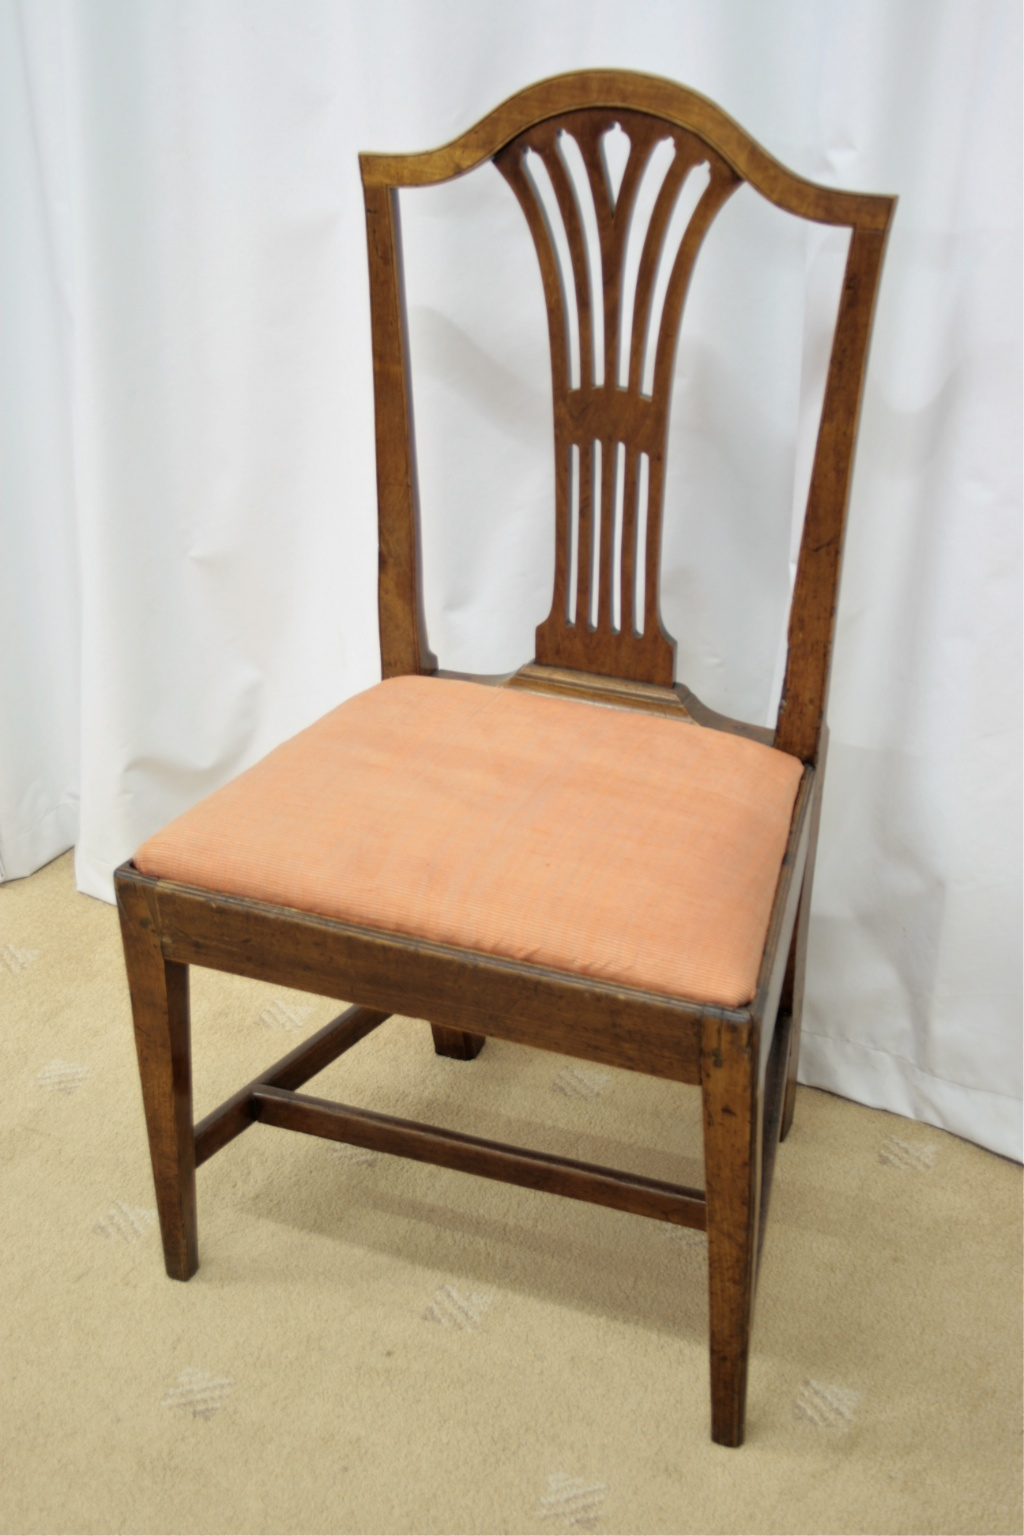 six georgian mahogany dining chairs for sale classifieds. Black Bedroom Furniture Sets. Home Design Ideas